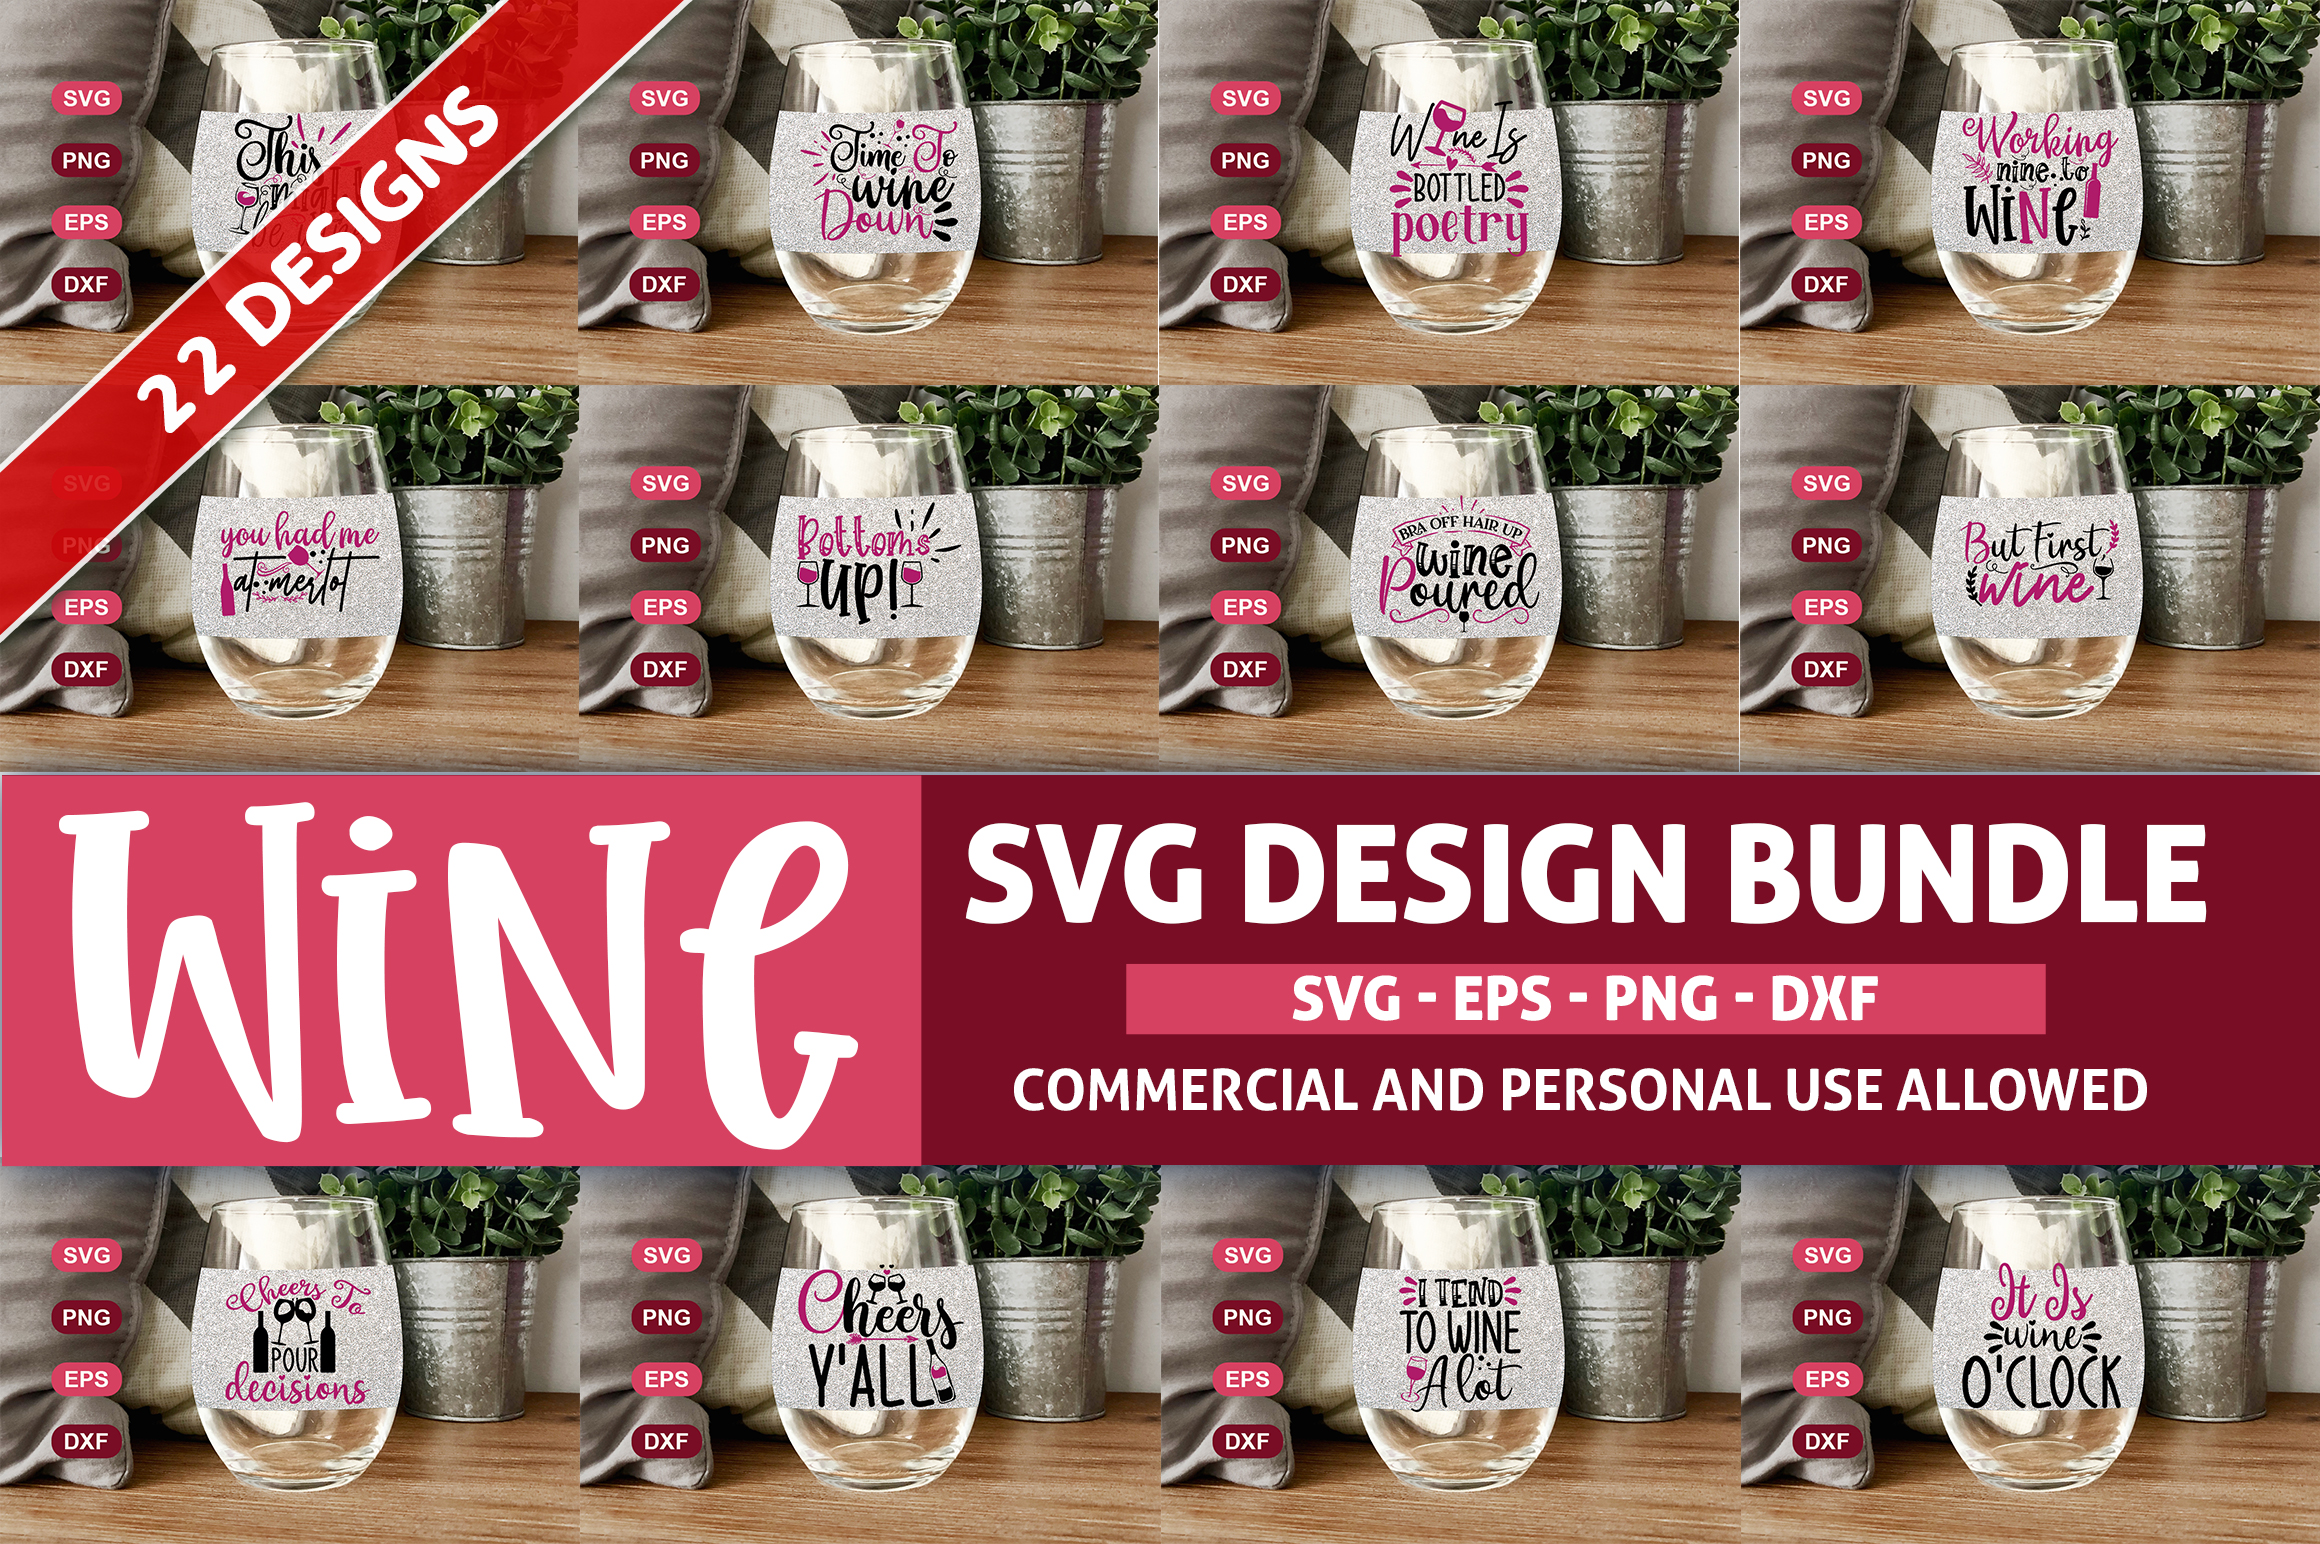 510 SVG DESIGN THE MIGHTY BUNDLE |32 DIFFERENT BUNDLES example image 14